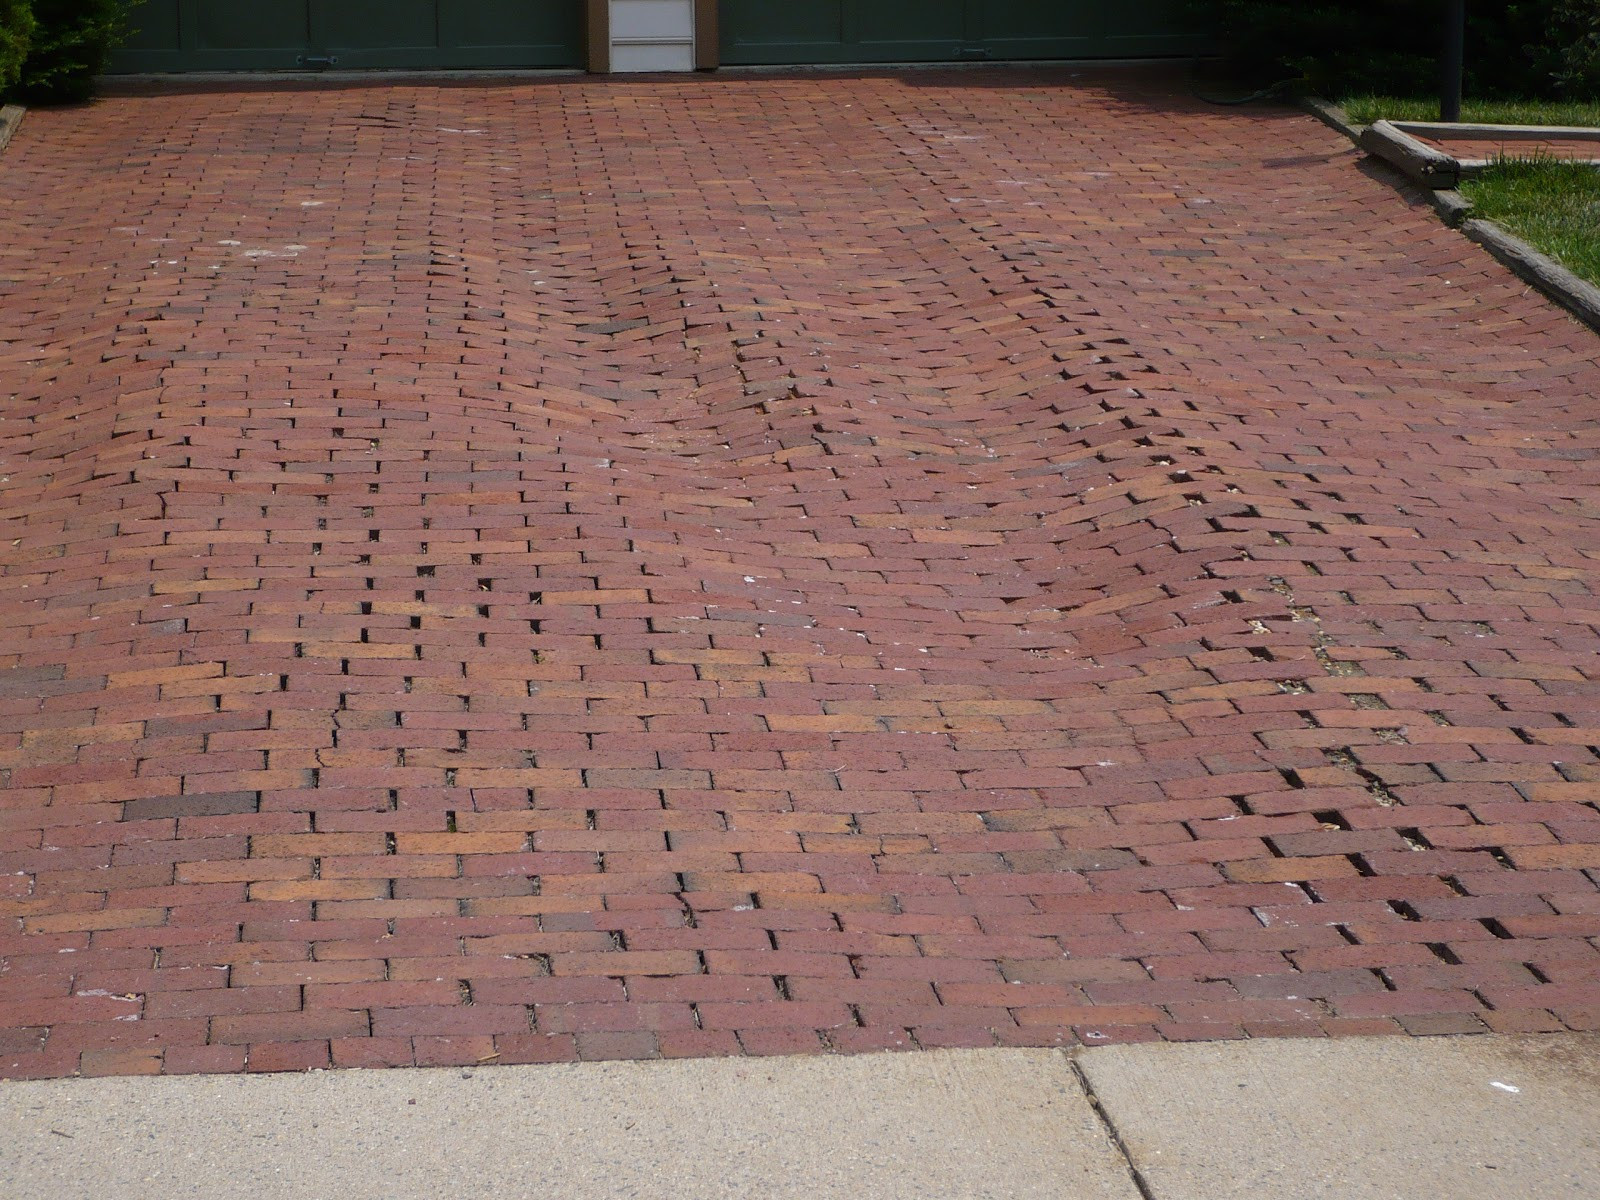 Best ideas about Patio Paver Calculator . Save or Pin Paver Patio Cost Calculator Now.